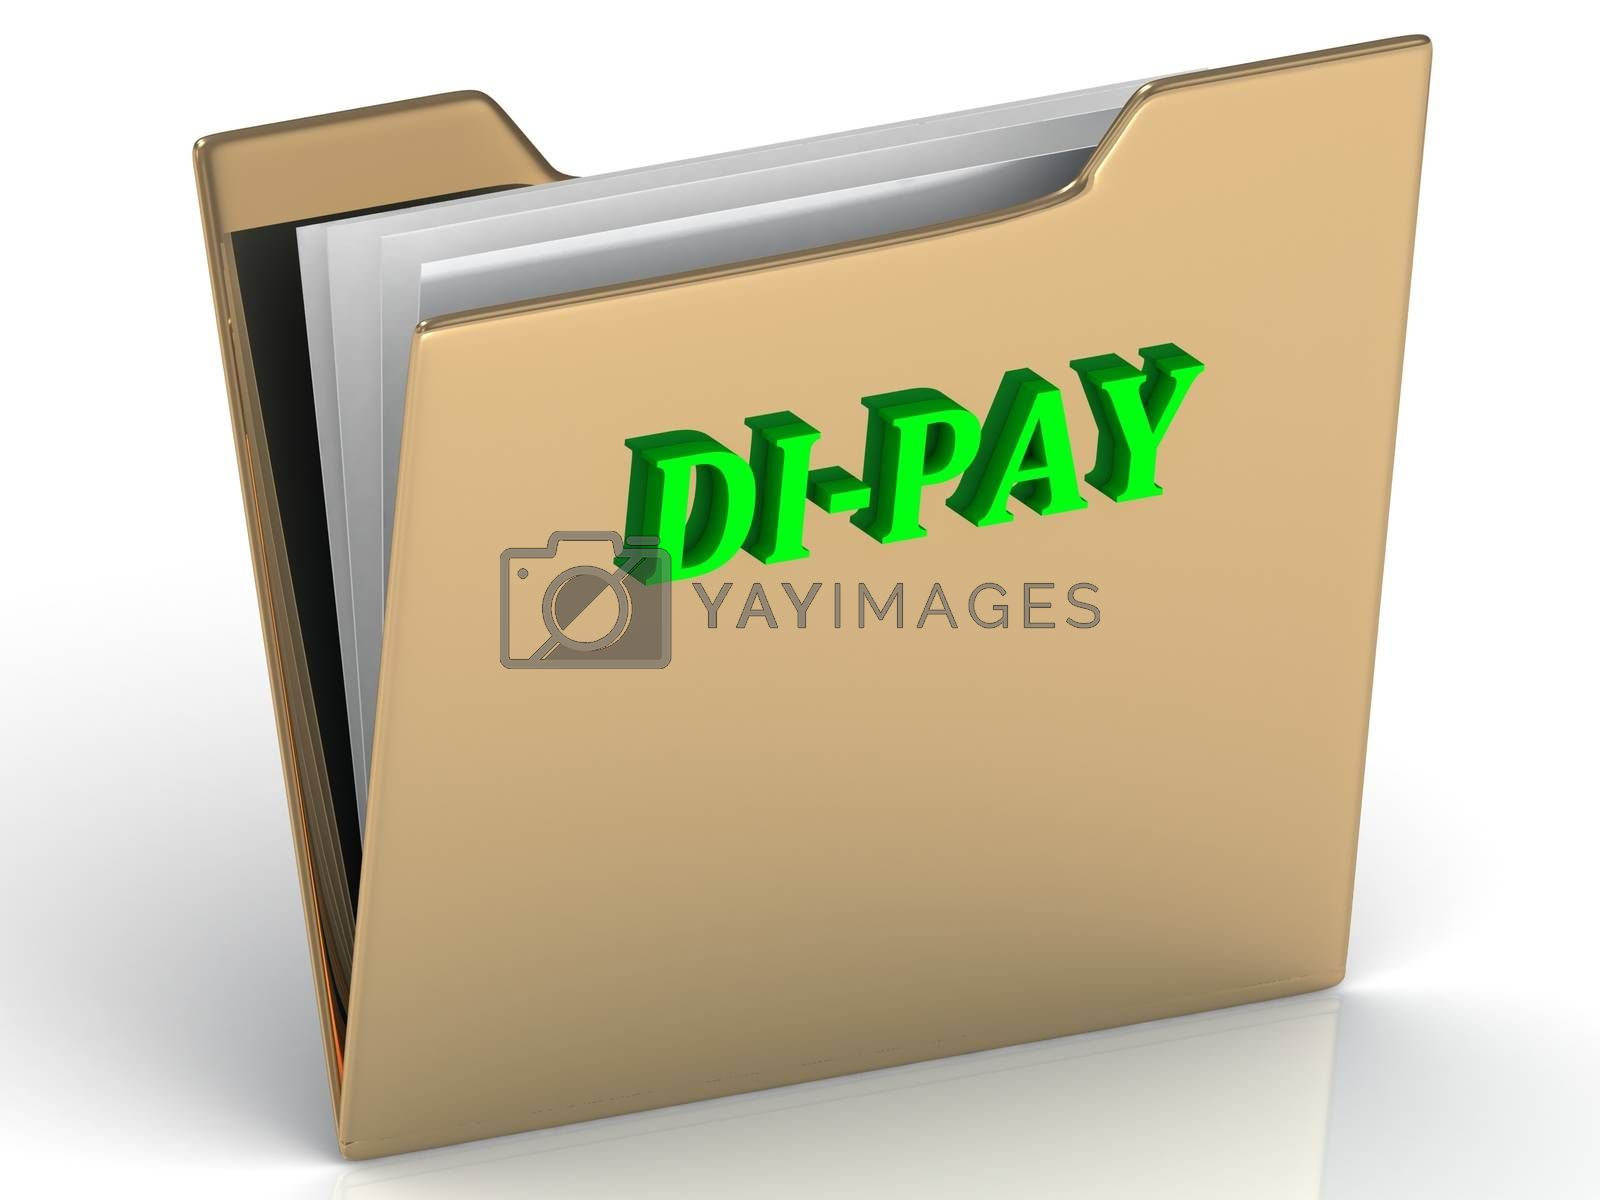 DI-PAY- bright color letters on a gold folder on a white background